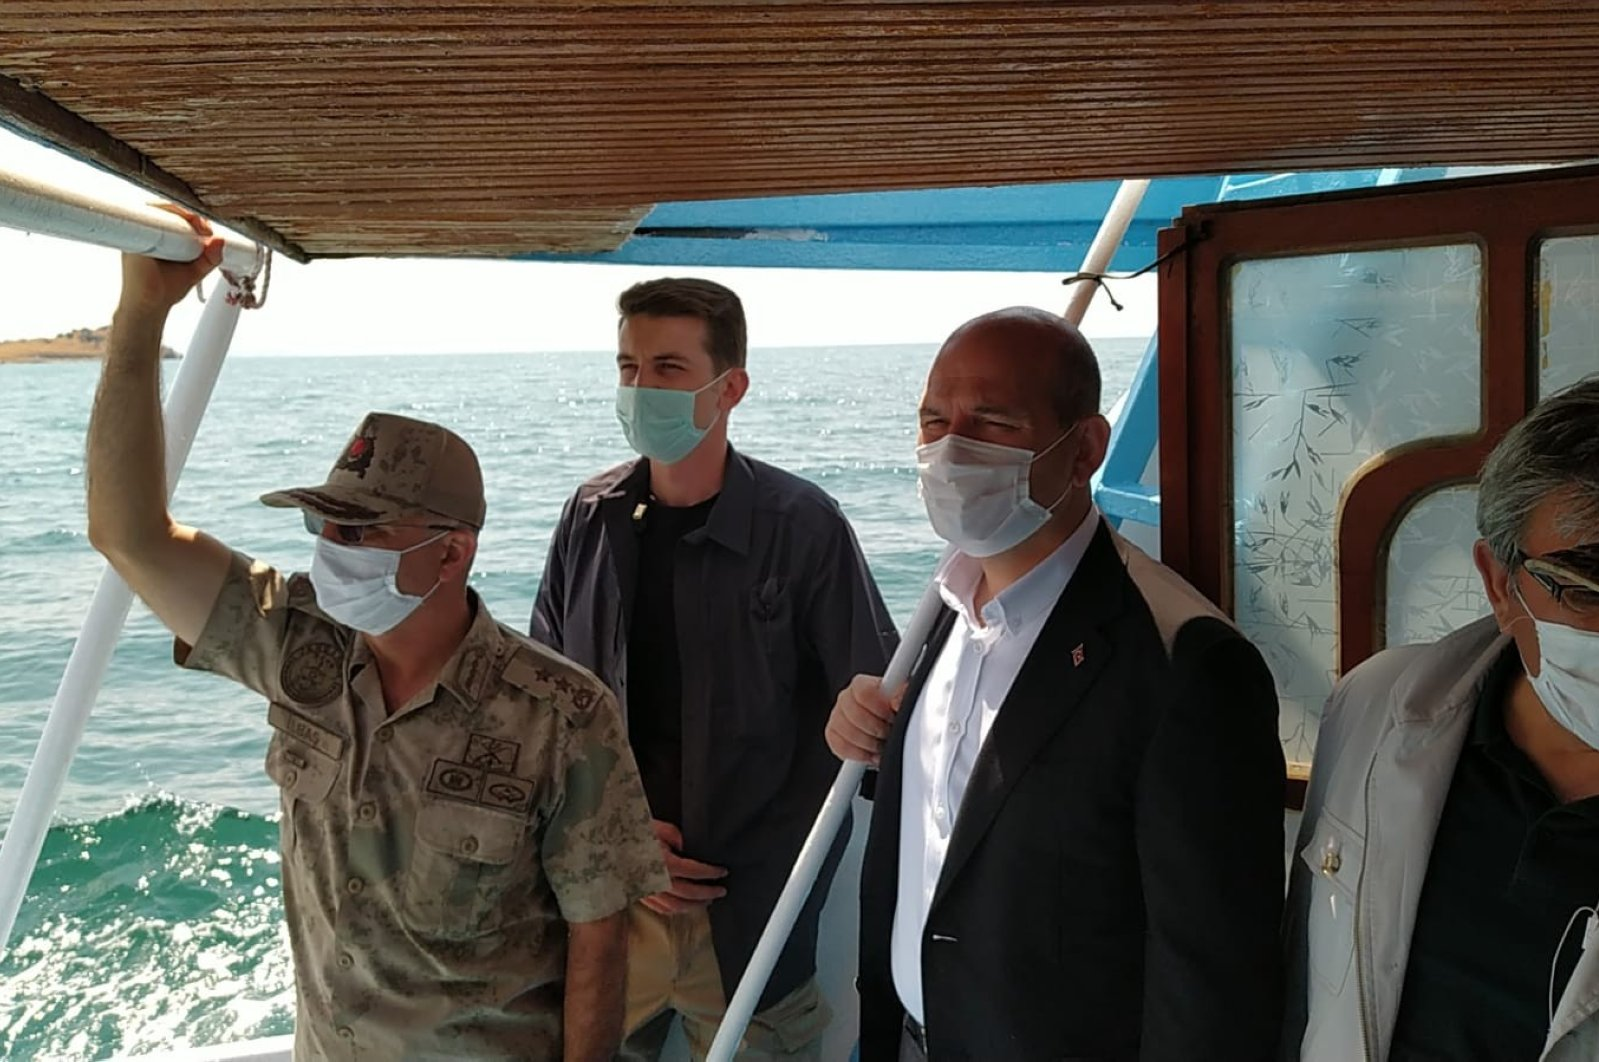 Interior Minister Süleyman Soylu (R), inspects the rescue work in Lake Van following the sinking of a migrant boat, July 1, 2020. (IHA)